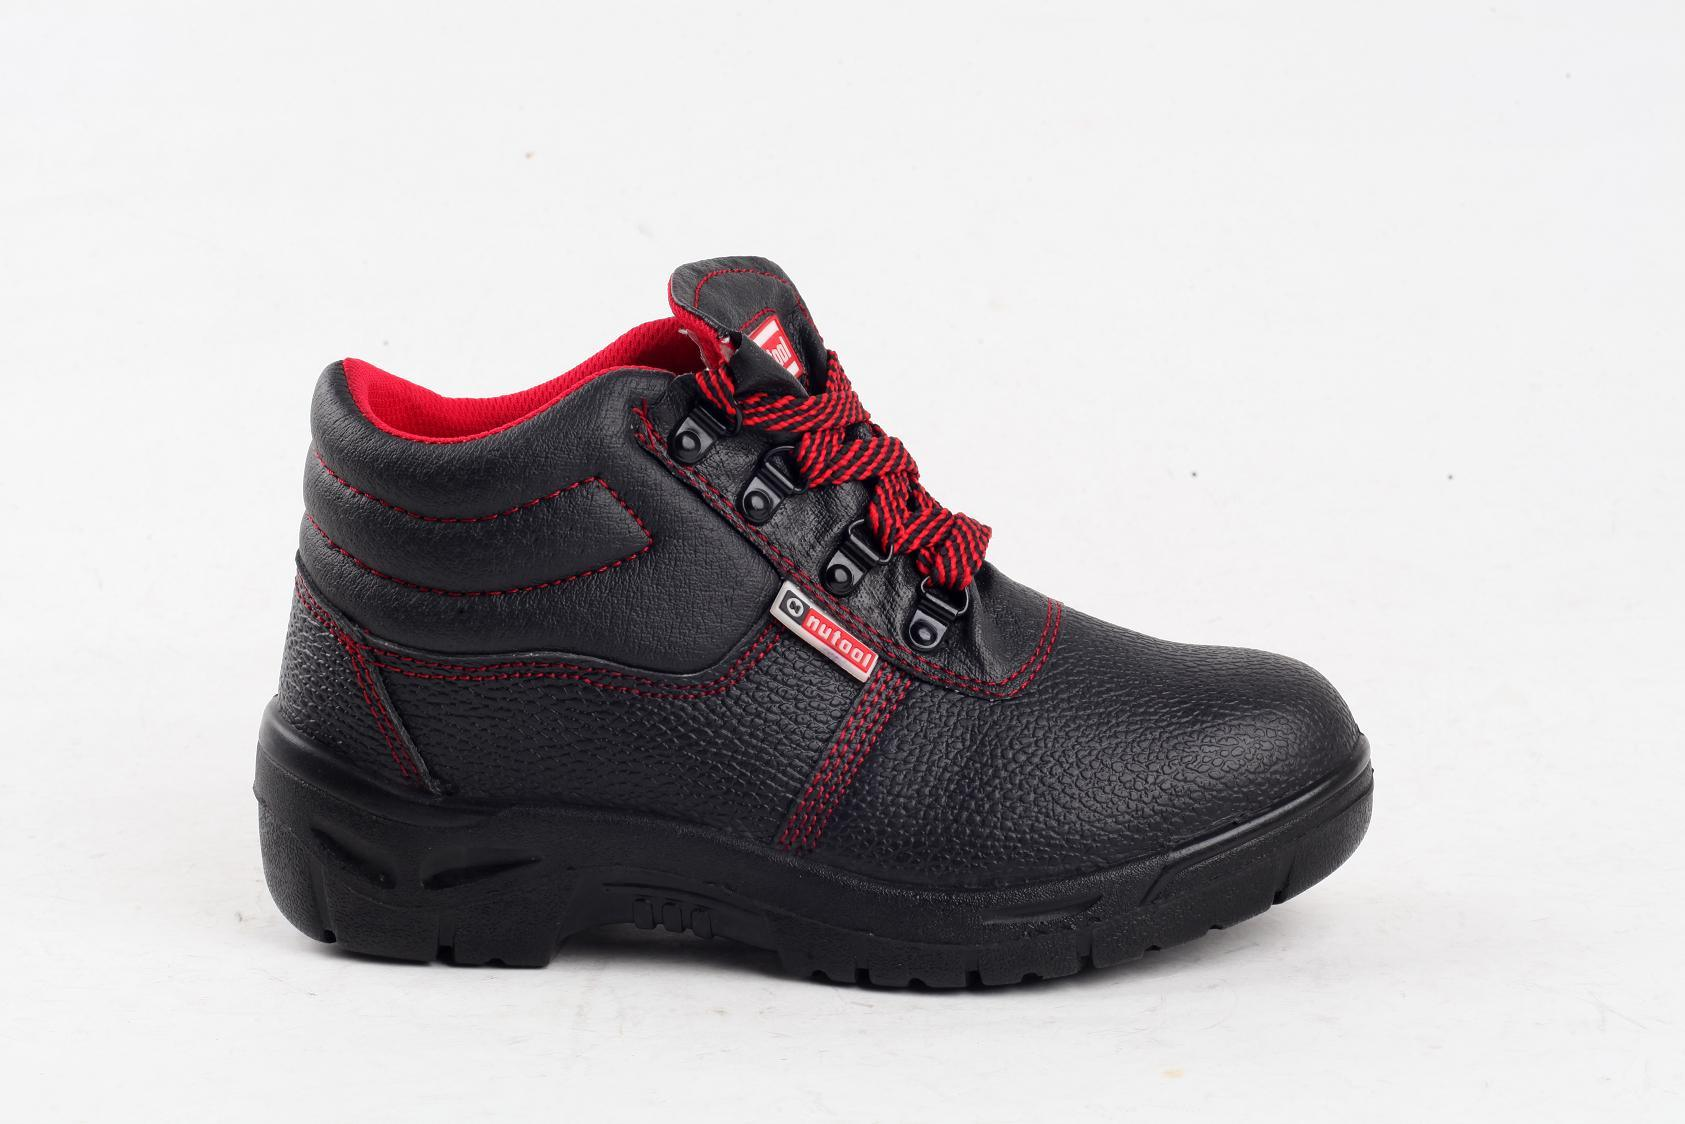 S1p Full Grain Leather/Cow Split Leather Safety Shoes Sy5005